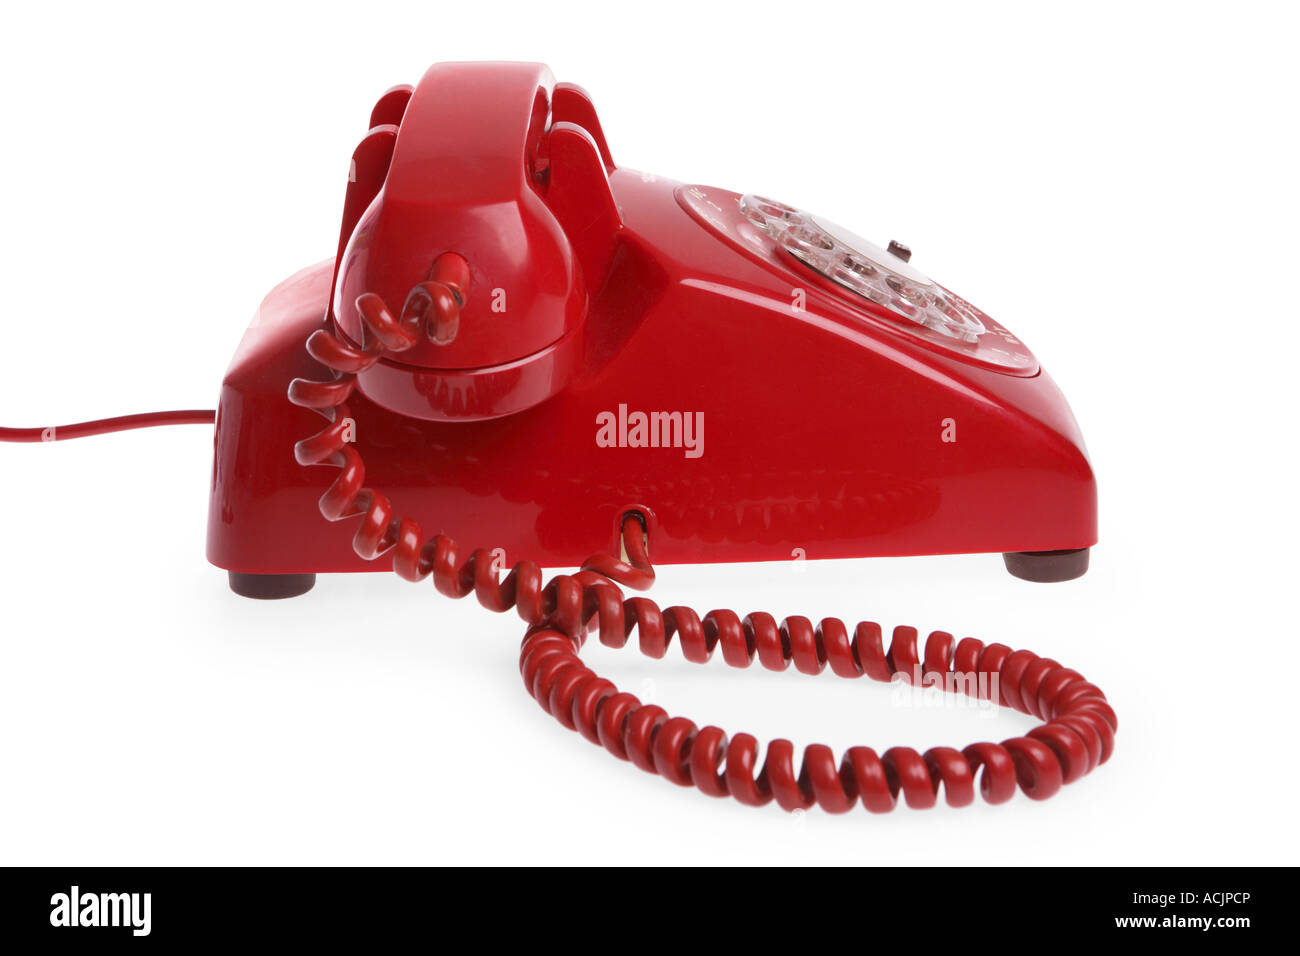 Red Telephone cut out on white background - Stock Image